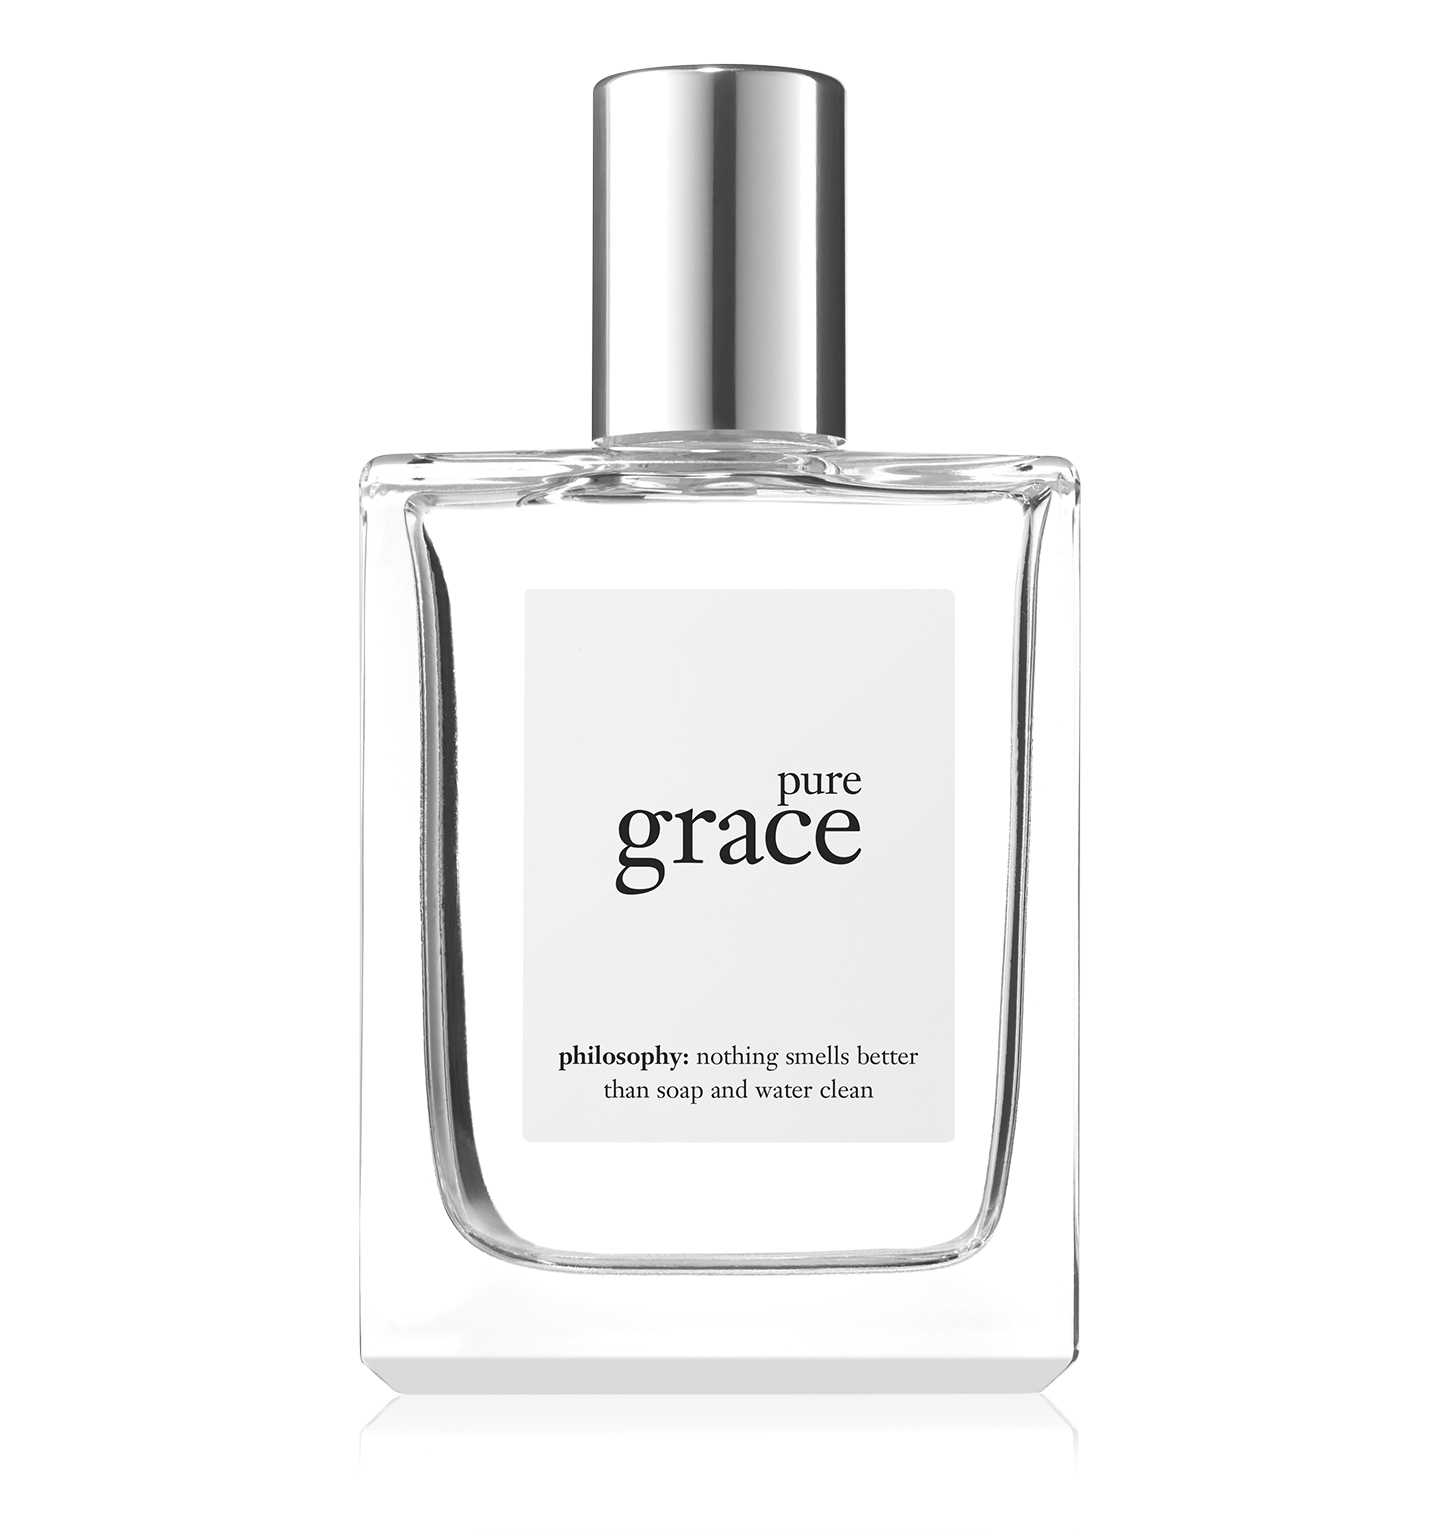 philosophy, pure grace spray fragrance